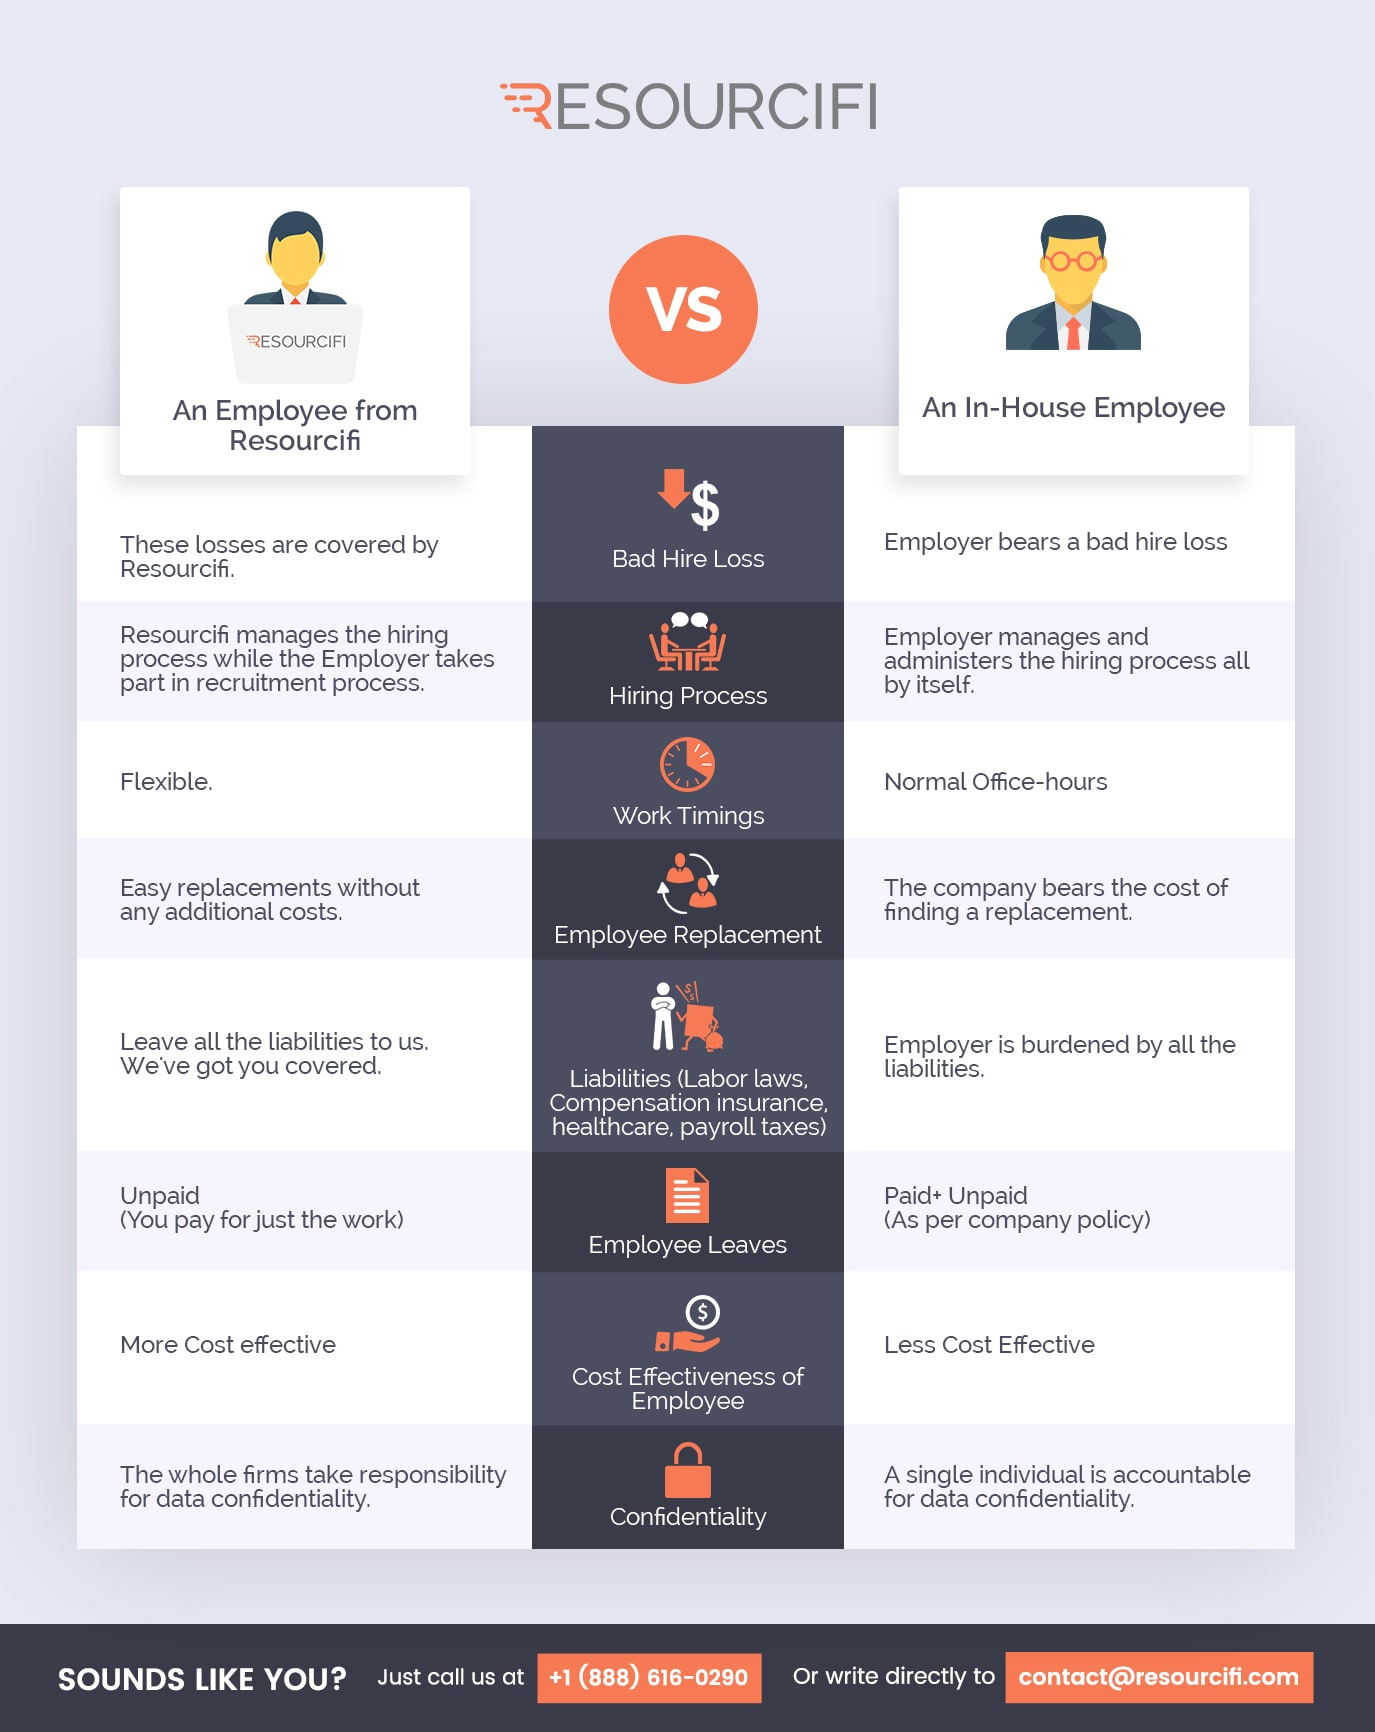 resourcifi-vs-an-in-house-team